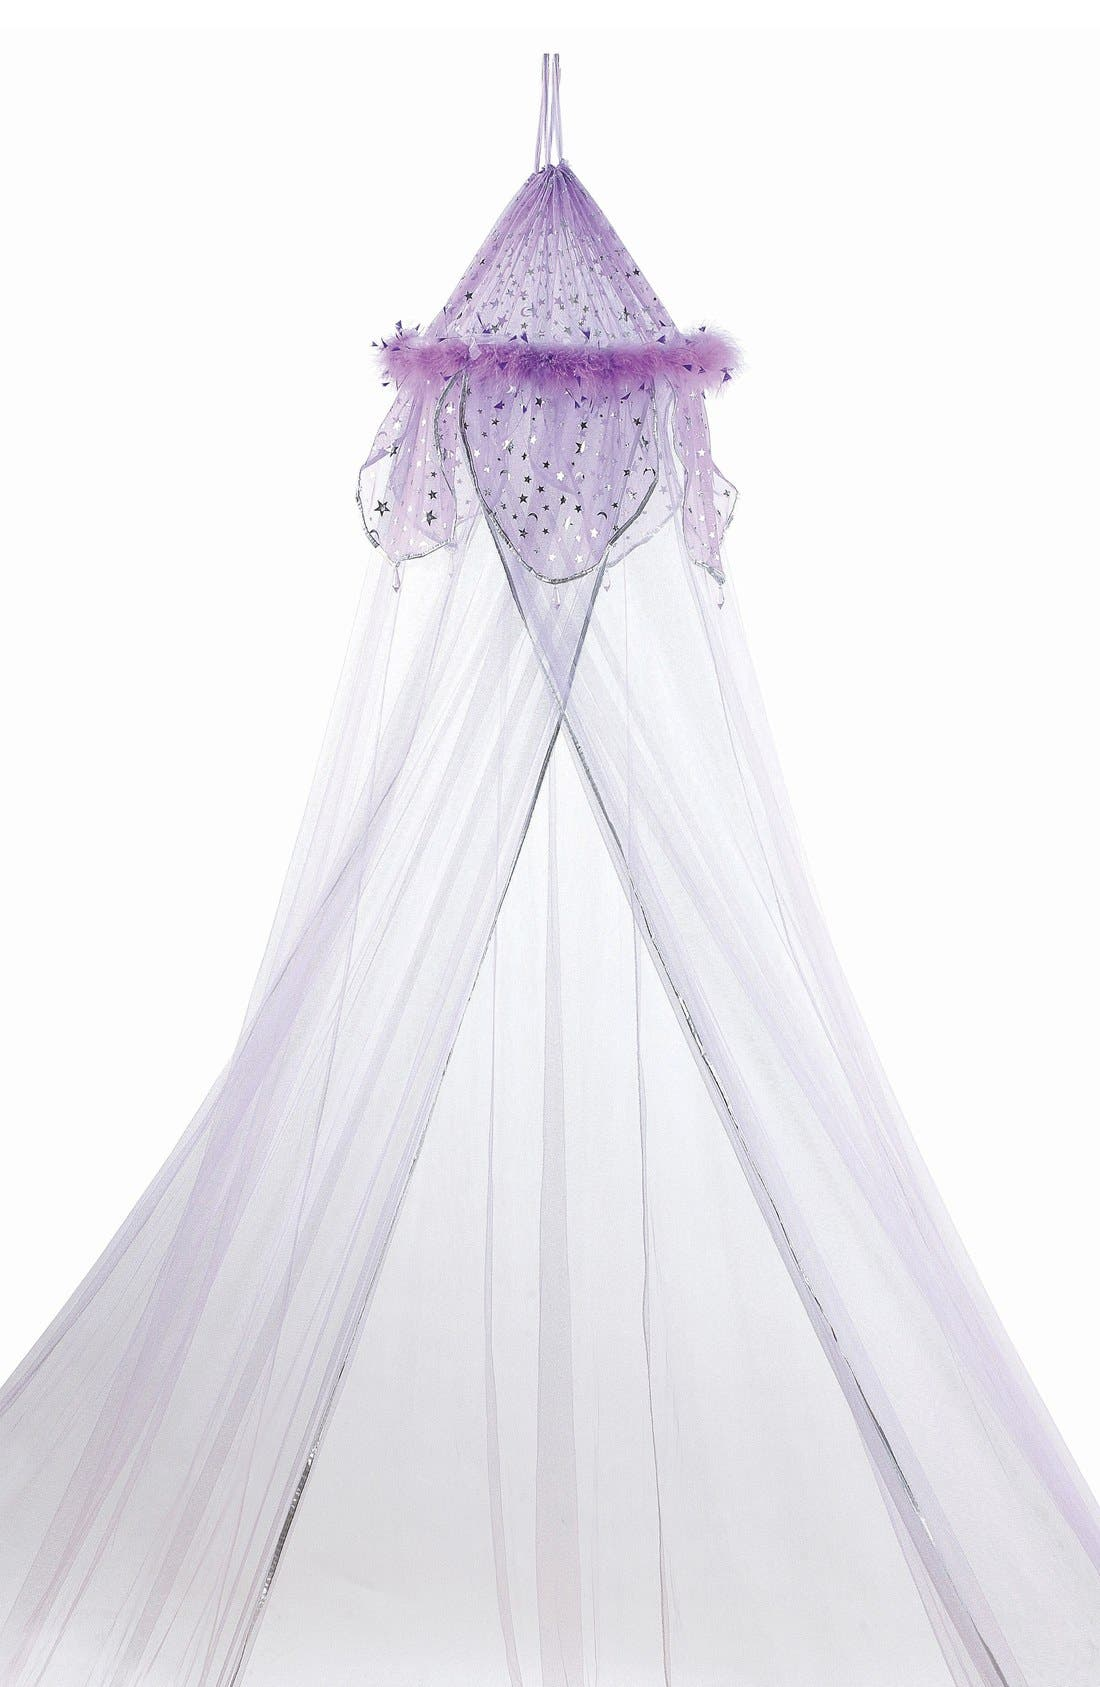 Main Image - 3C4G 'Lavender Fantasy' Bed Canopy